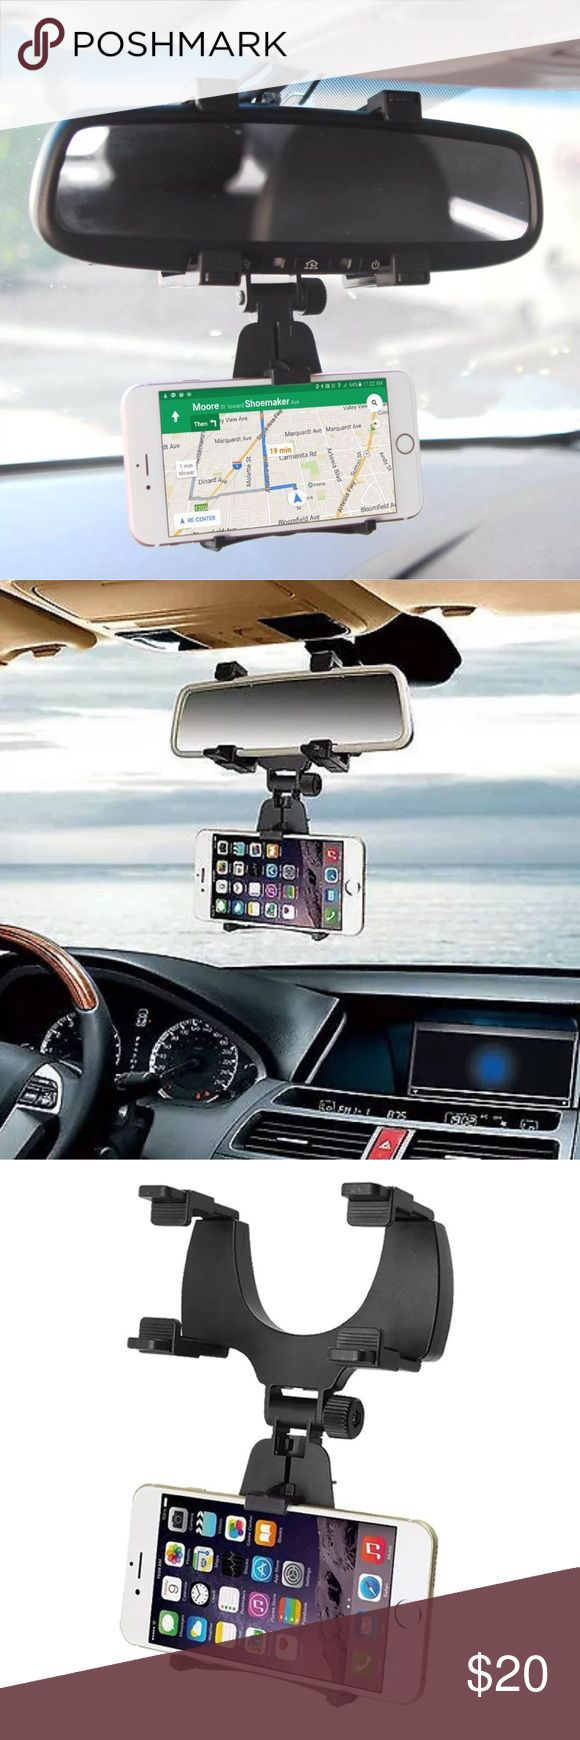 New Smartphone Holder Drive in certainty with our Universal Rearview Mirror Car Smartphone Holder. Easy to install, simply attach the bracket to the rearview mirror. Equipped with sturdy lock knobs which lock to the neck of the mount for sturdiness. The clamp firmly screws onto the rear view mirror giving you exceptional results. The rearview mirror firmly holds devices up to 3.5 inches in width, expands to accommodate large phones such as the iPhone 7 Plus and Galaxy S8 Plus.  Easily fits…